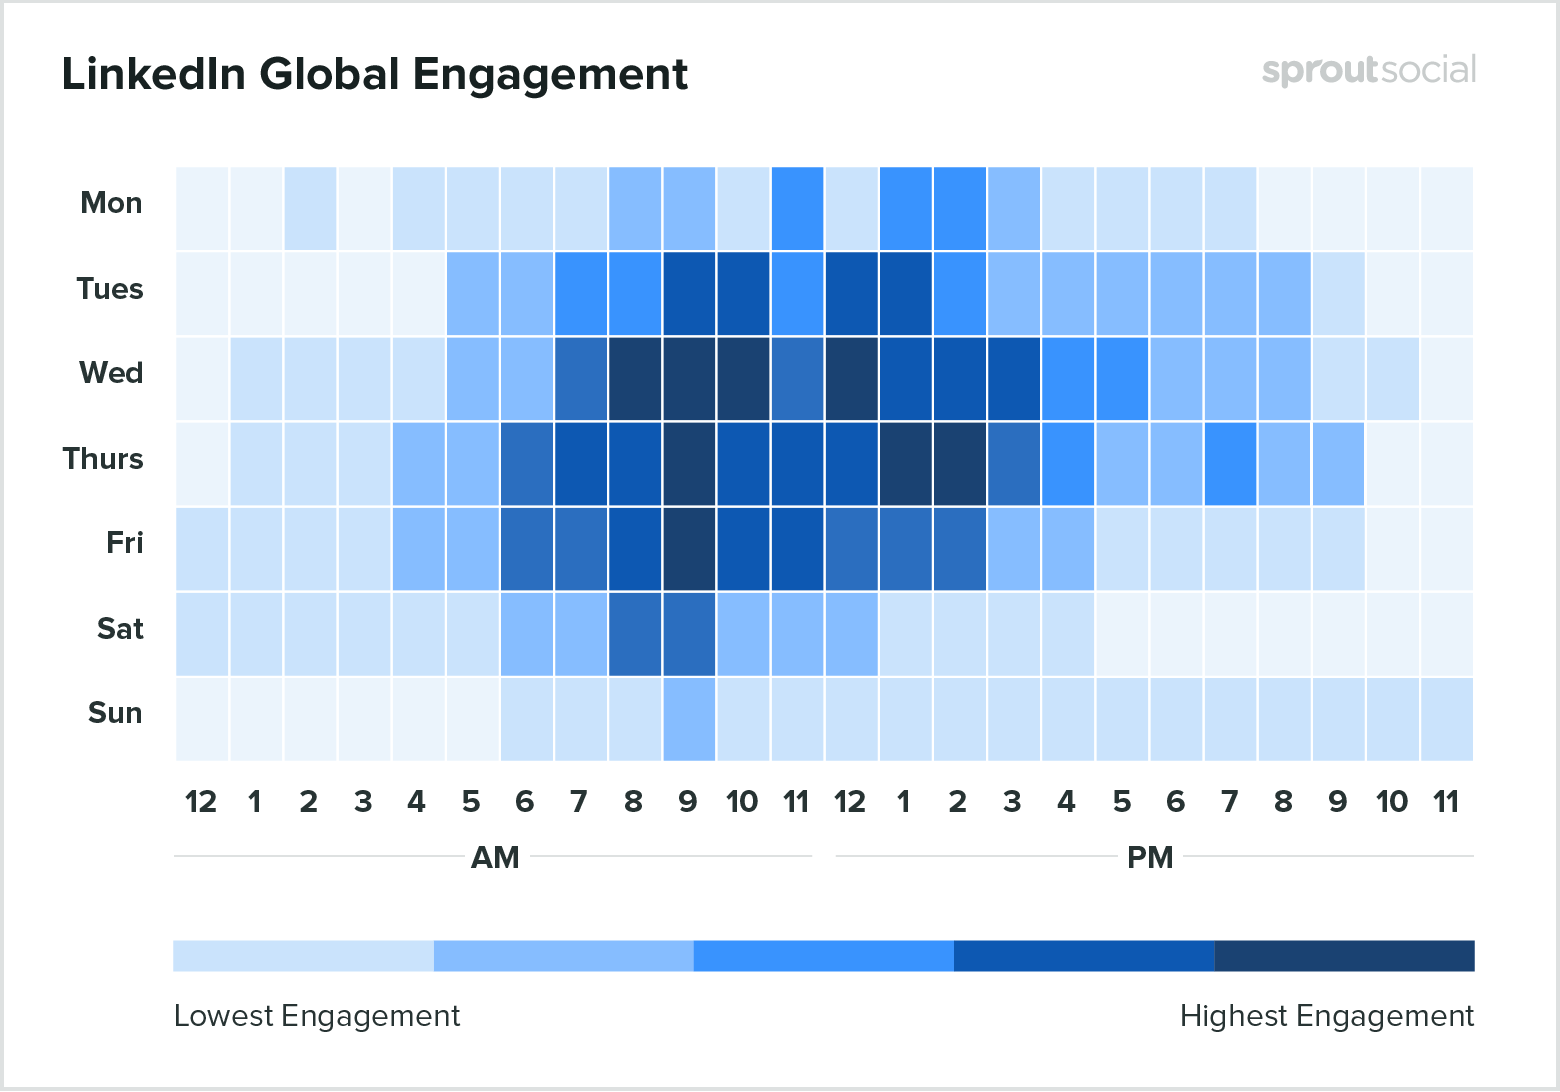 Is There a Generic Best Time to Post On LinkedIn?